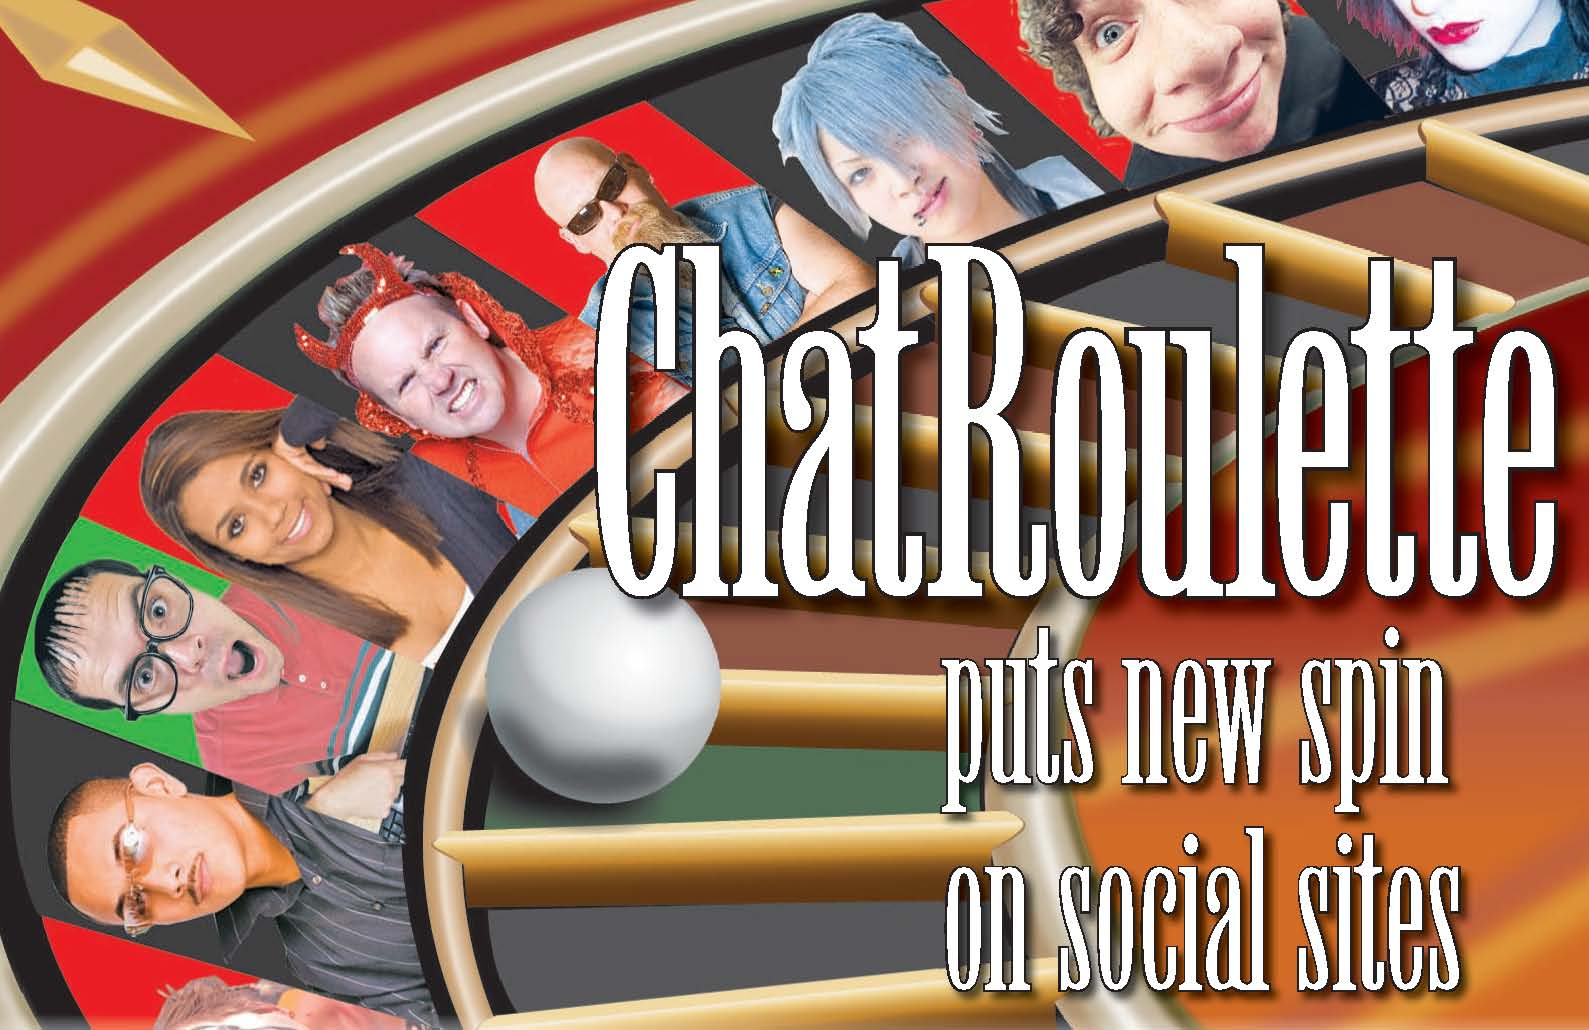 'chatroulette' puts new spin on social sites - the blade